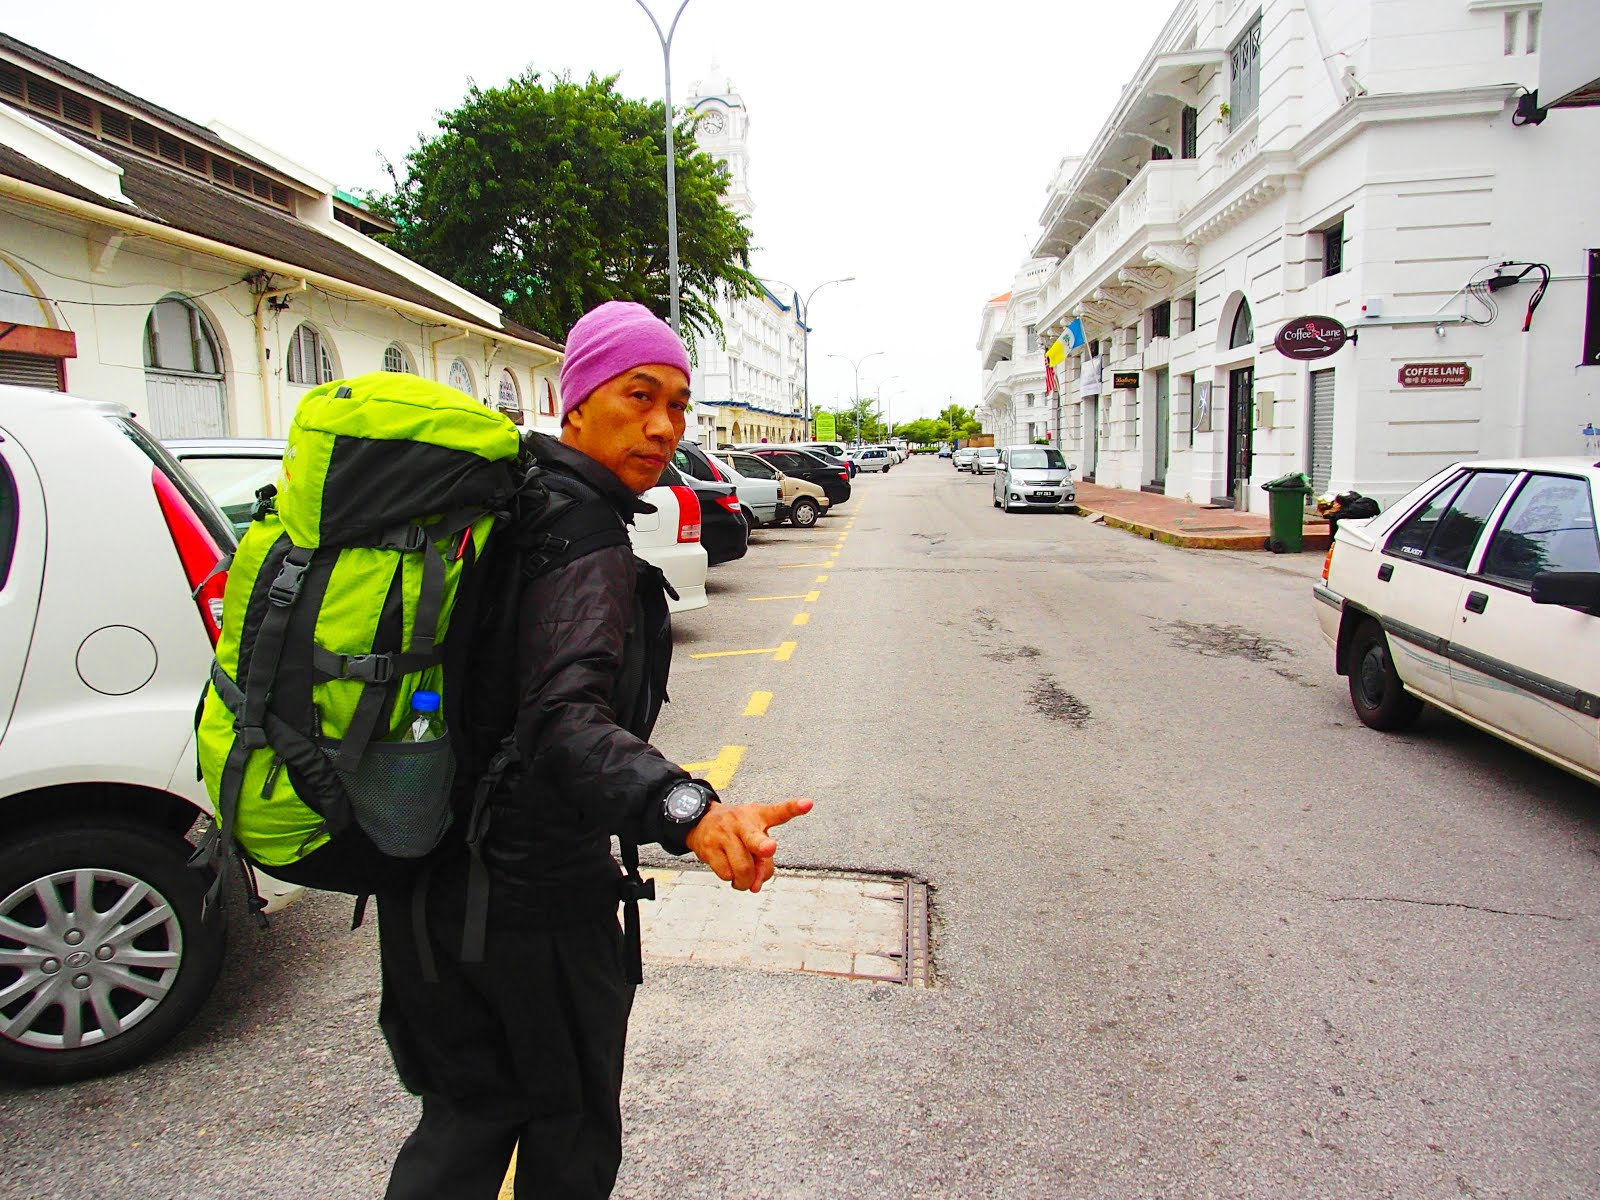 BACKPACKER [2014]